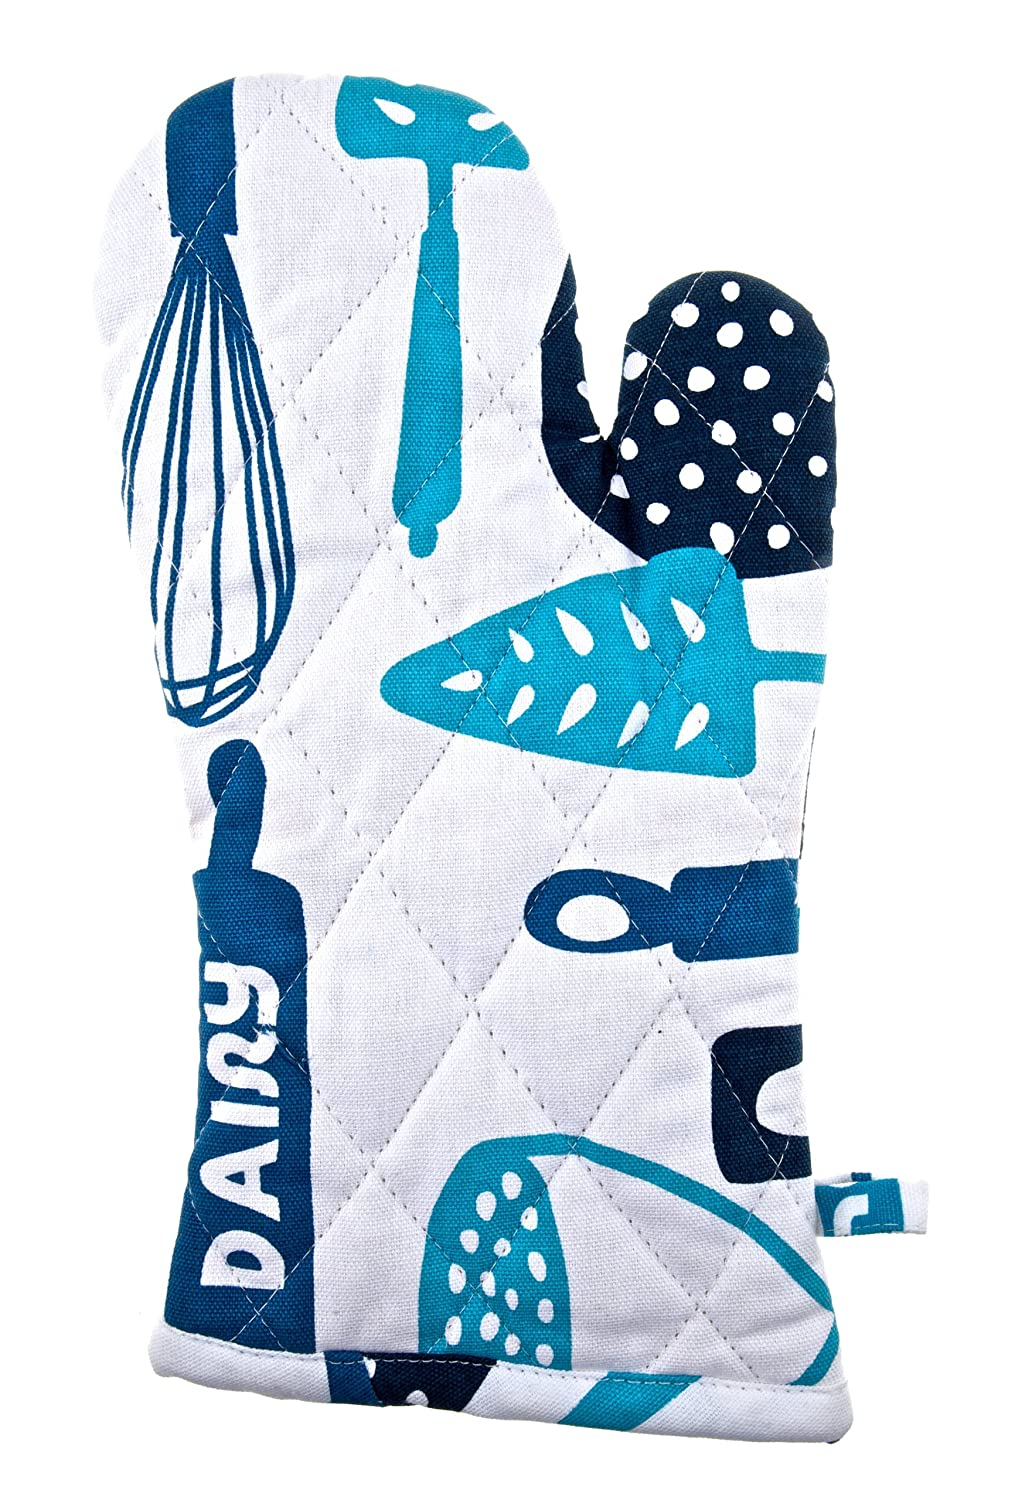 """Pot Holder Glove 100/% Cotton Hanging Loop for Easy Storage Dairy Blue Oven Mitt Color Coded Kitchen Tools by The Kosher Cook 13/"""" x 6/"""""""